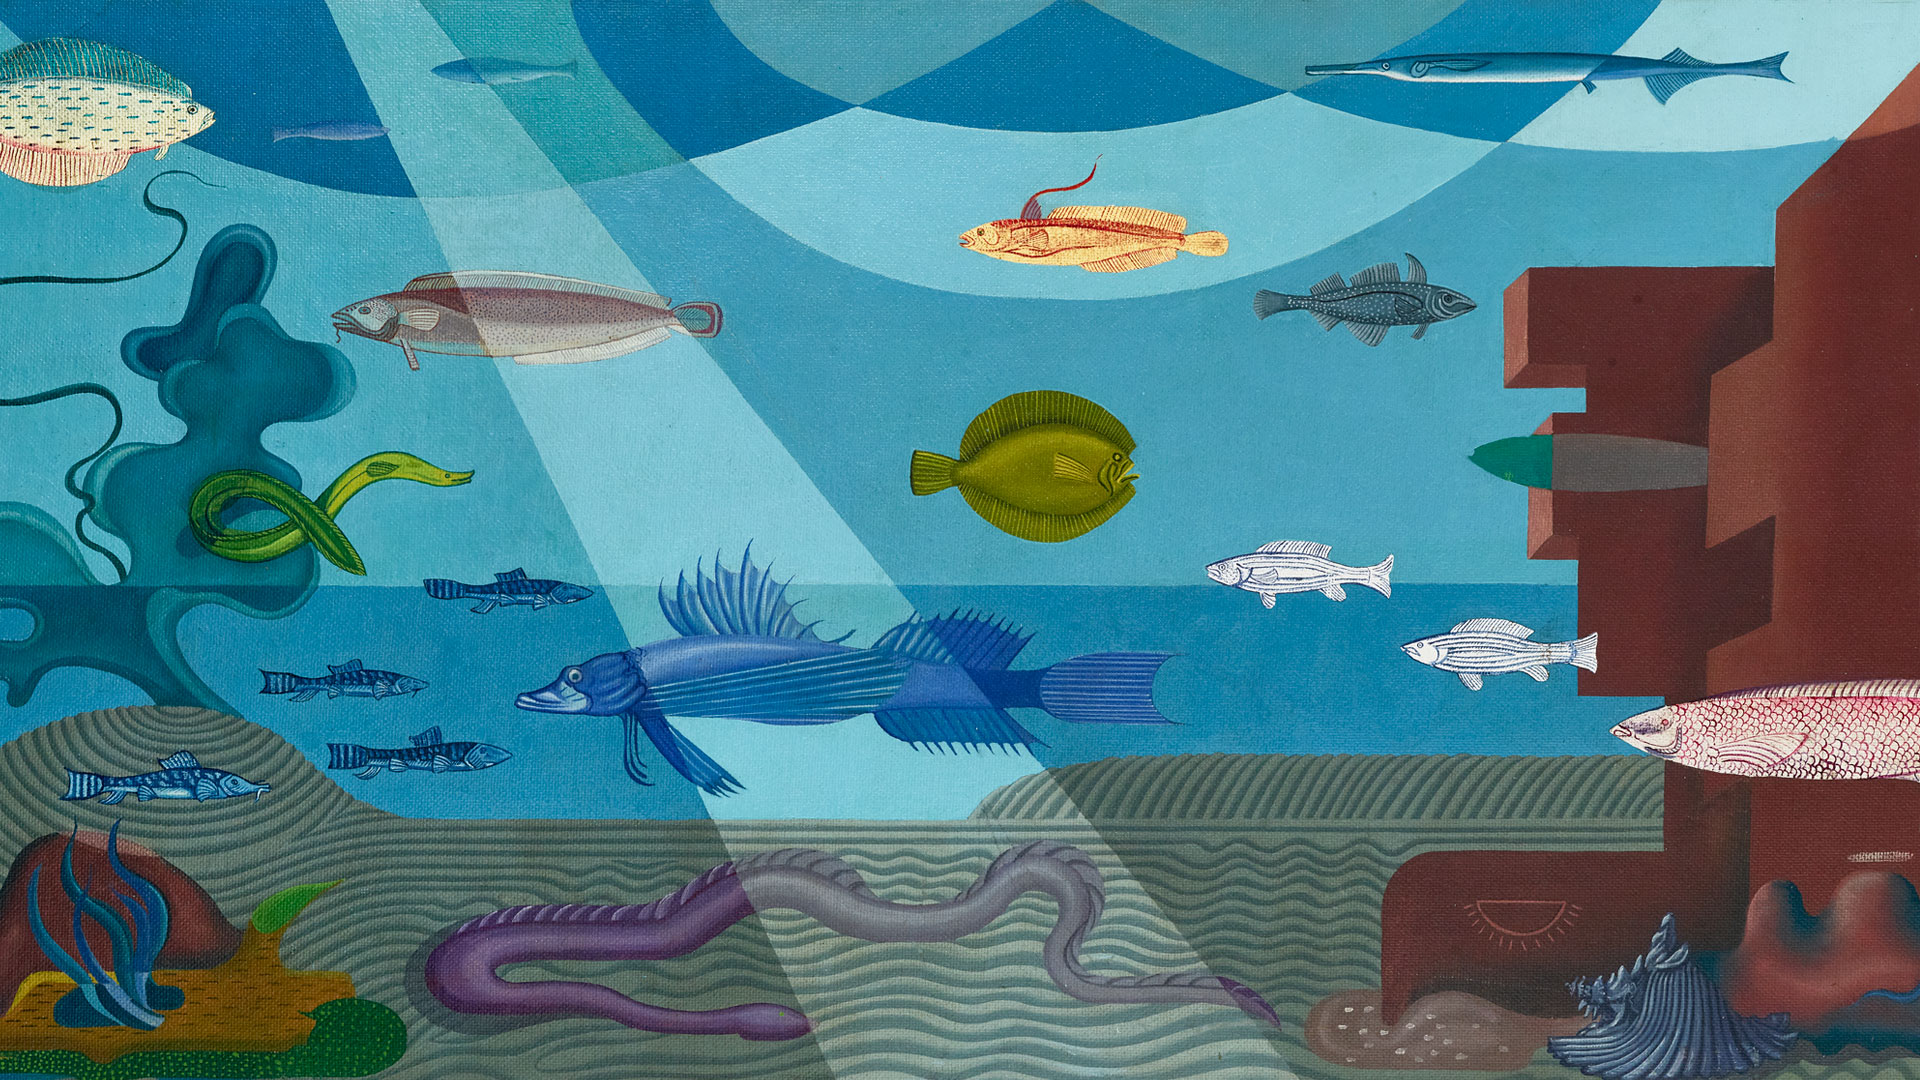 Mural study depicting an underwater environment complete with stylized ruins